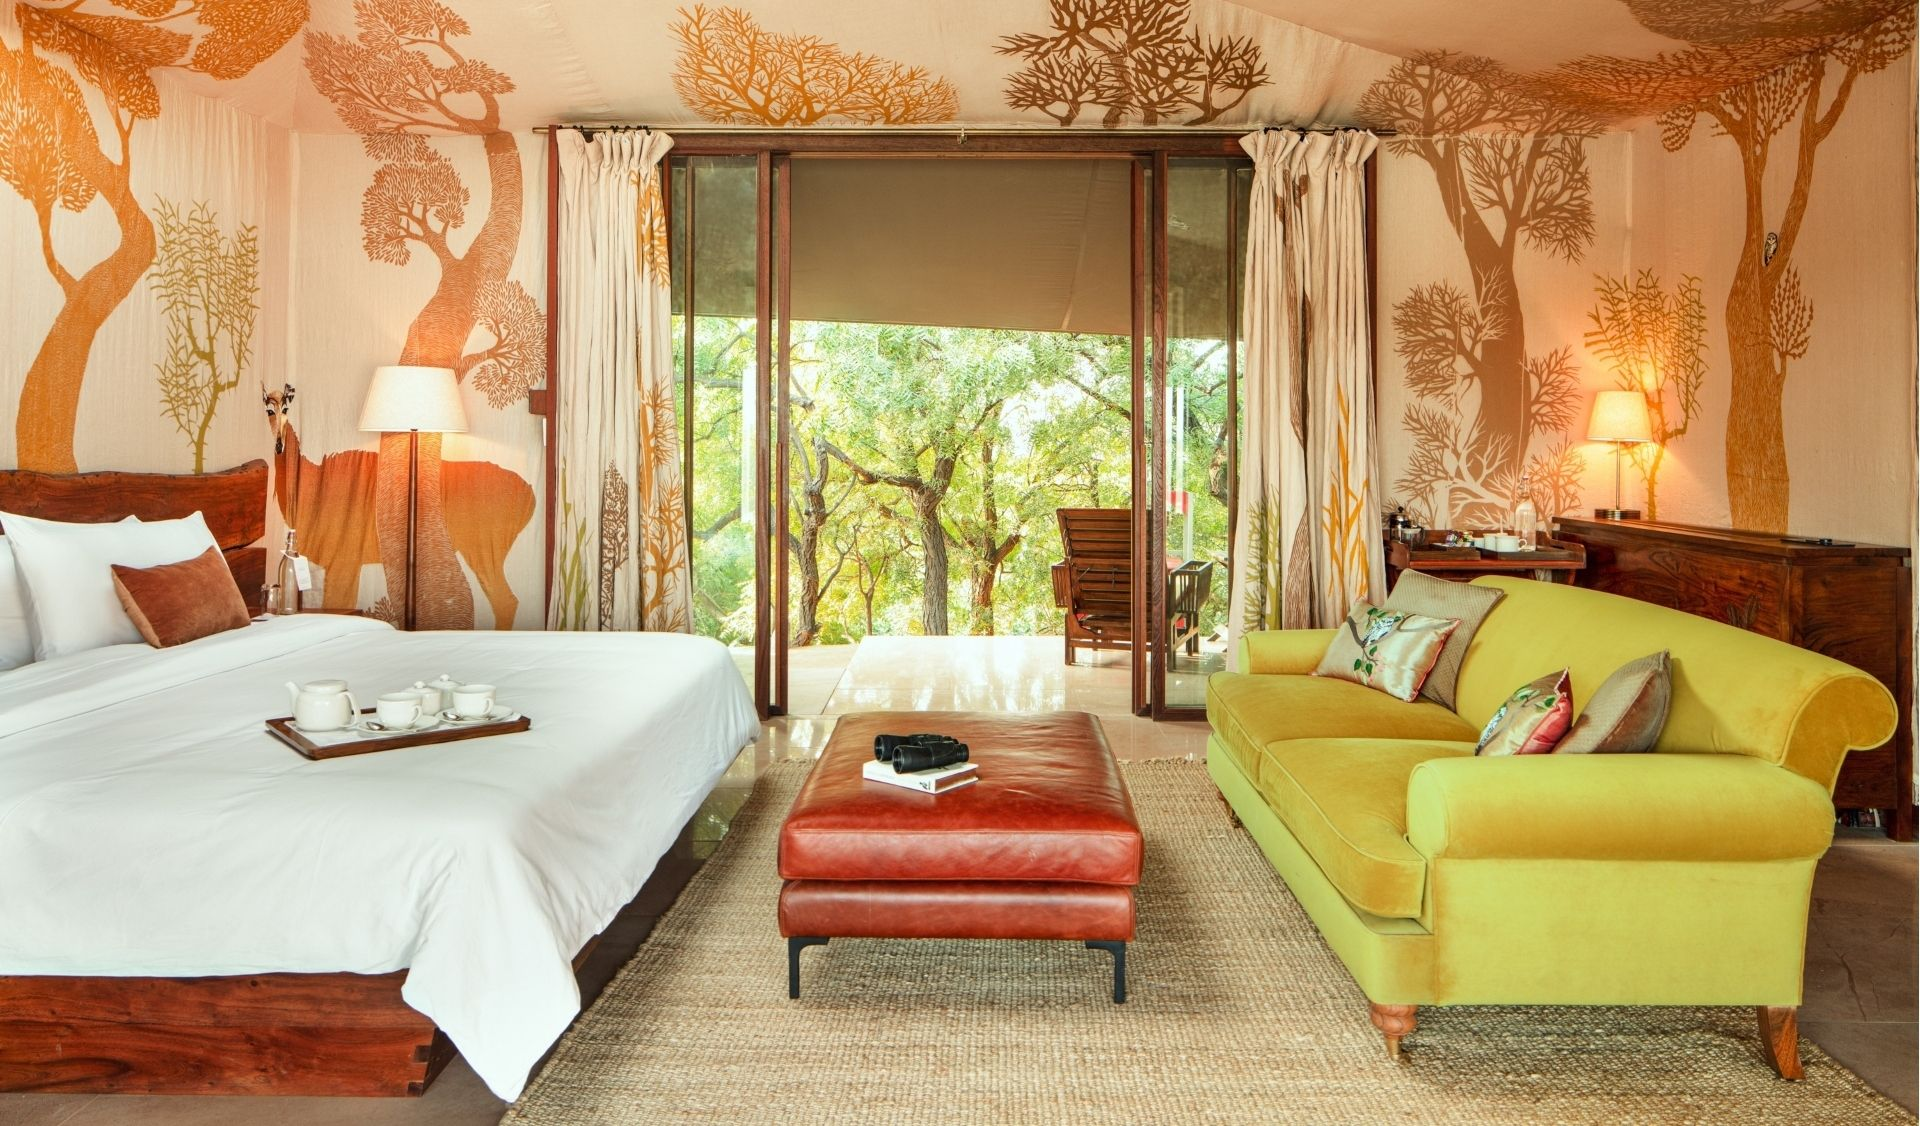 RAAS Chhatrasagar – Luxury tent looking out towards the forest side